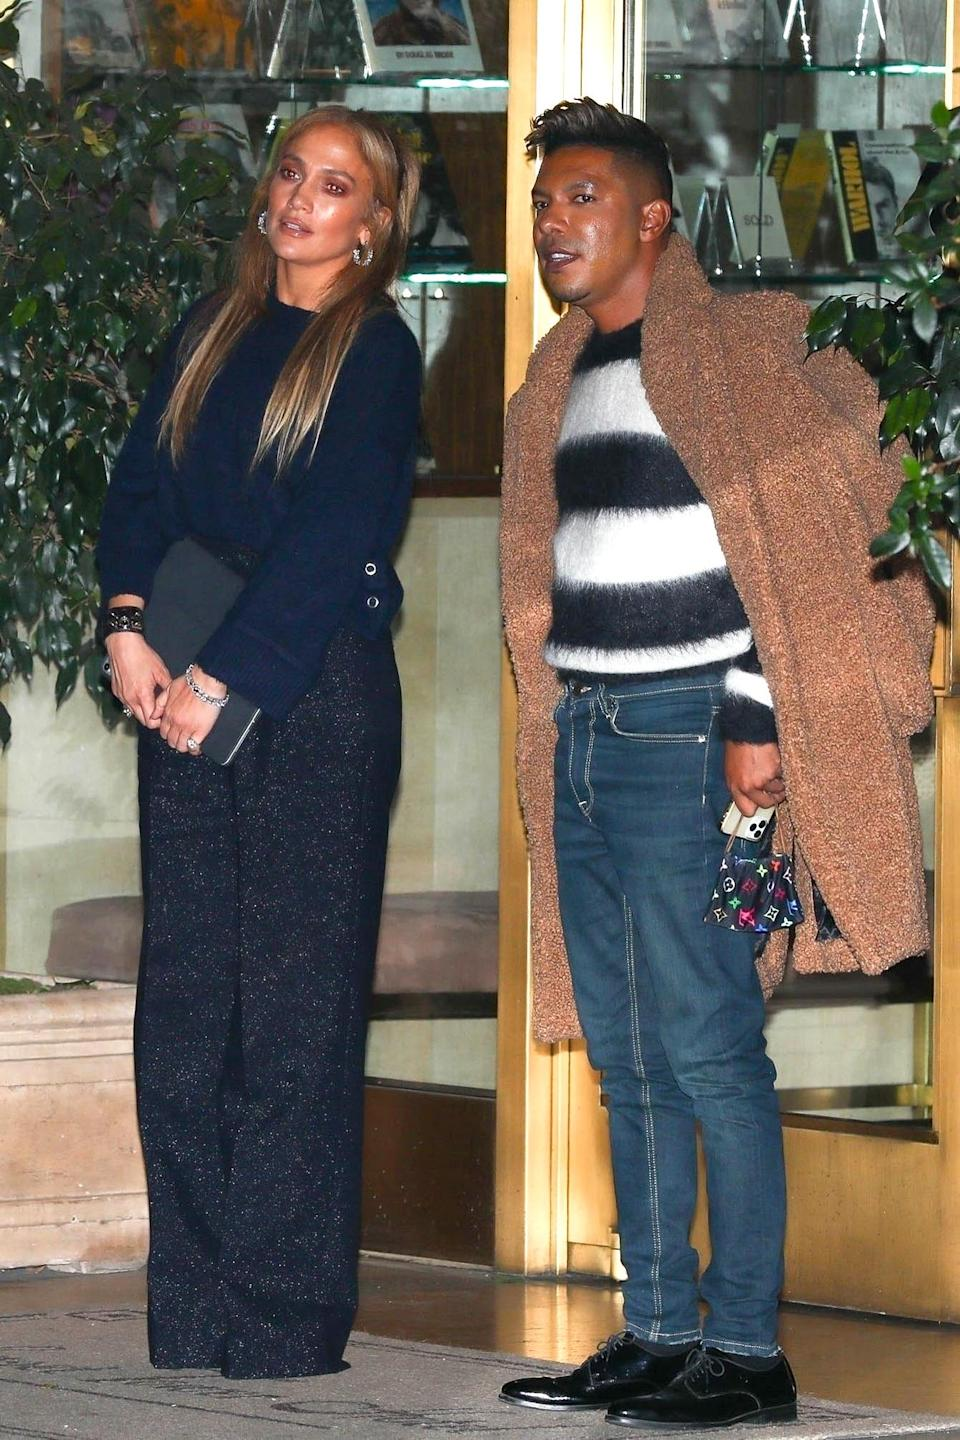 <p>Jennifer Lopez was spotted leaving the Sunset Towers with friend and voice coach Stevie Mackey in West Hollywood.</p>